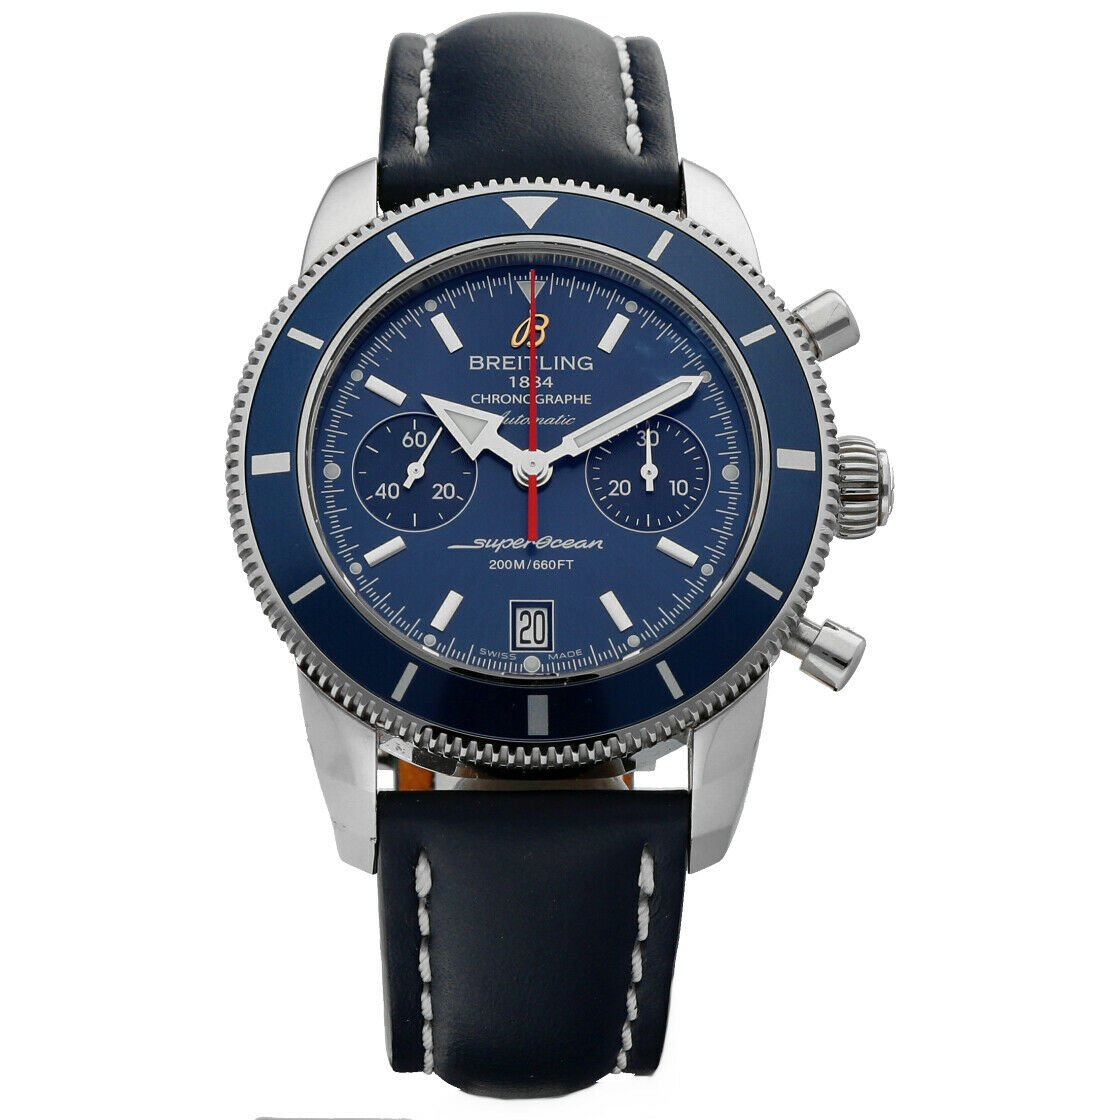 Breitling A23370 Superocean Heritage Blue Dial Chrono Leather Auto Mens Watch 124132399908